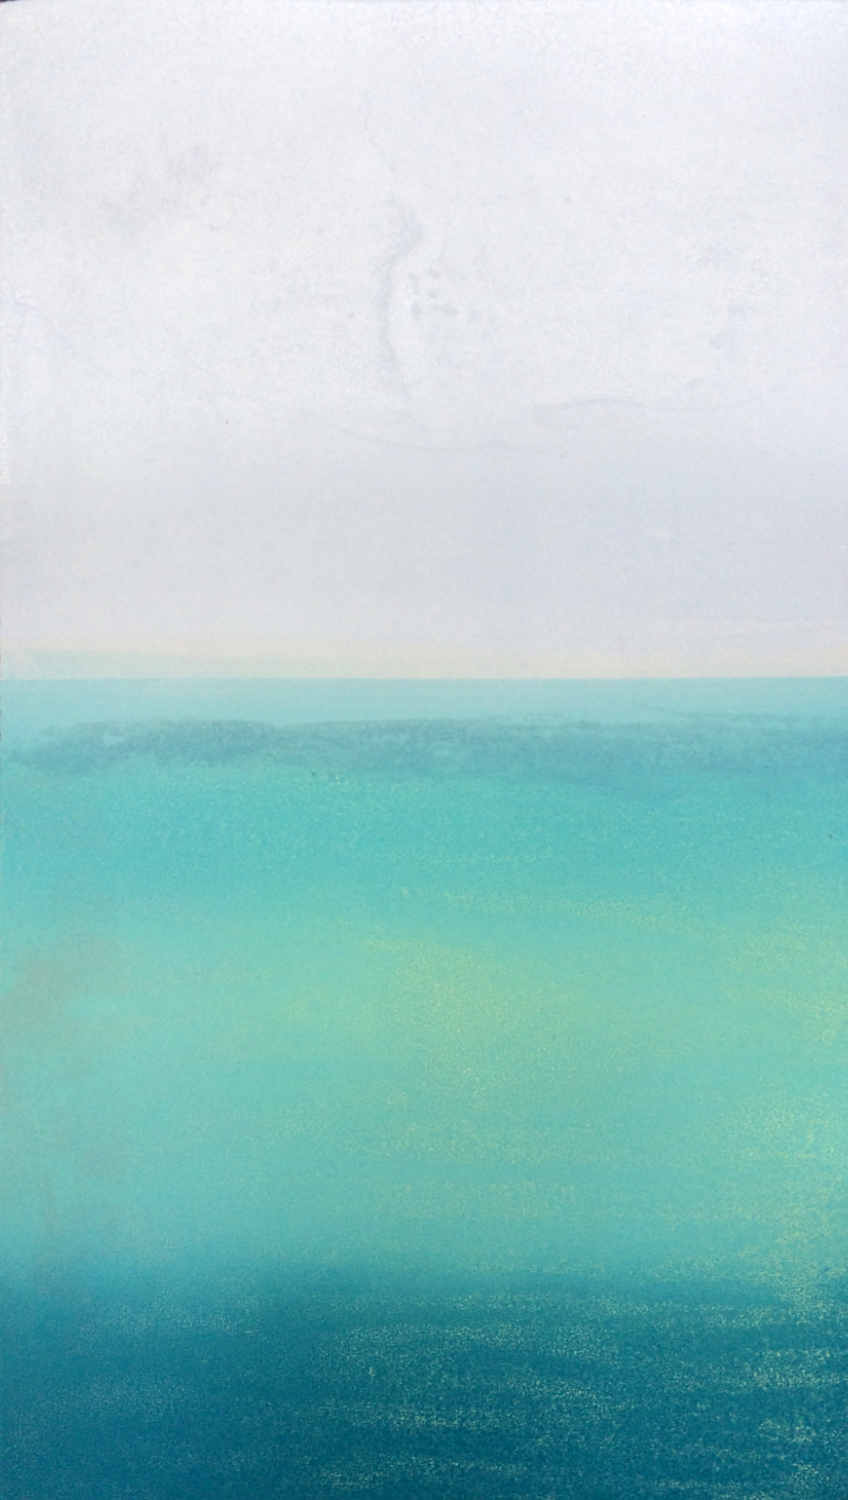 Elke Thönnes,   Seabreeze  II,  carborundum, plate and paper: 48 x 27cm. Unframed price: €180.00